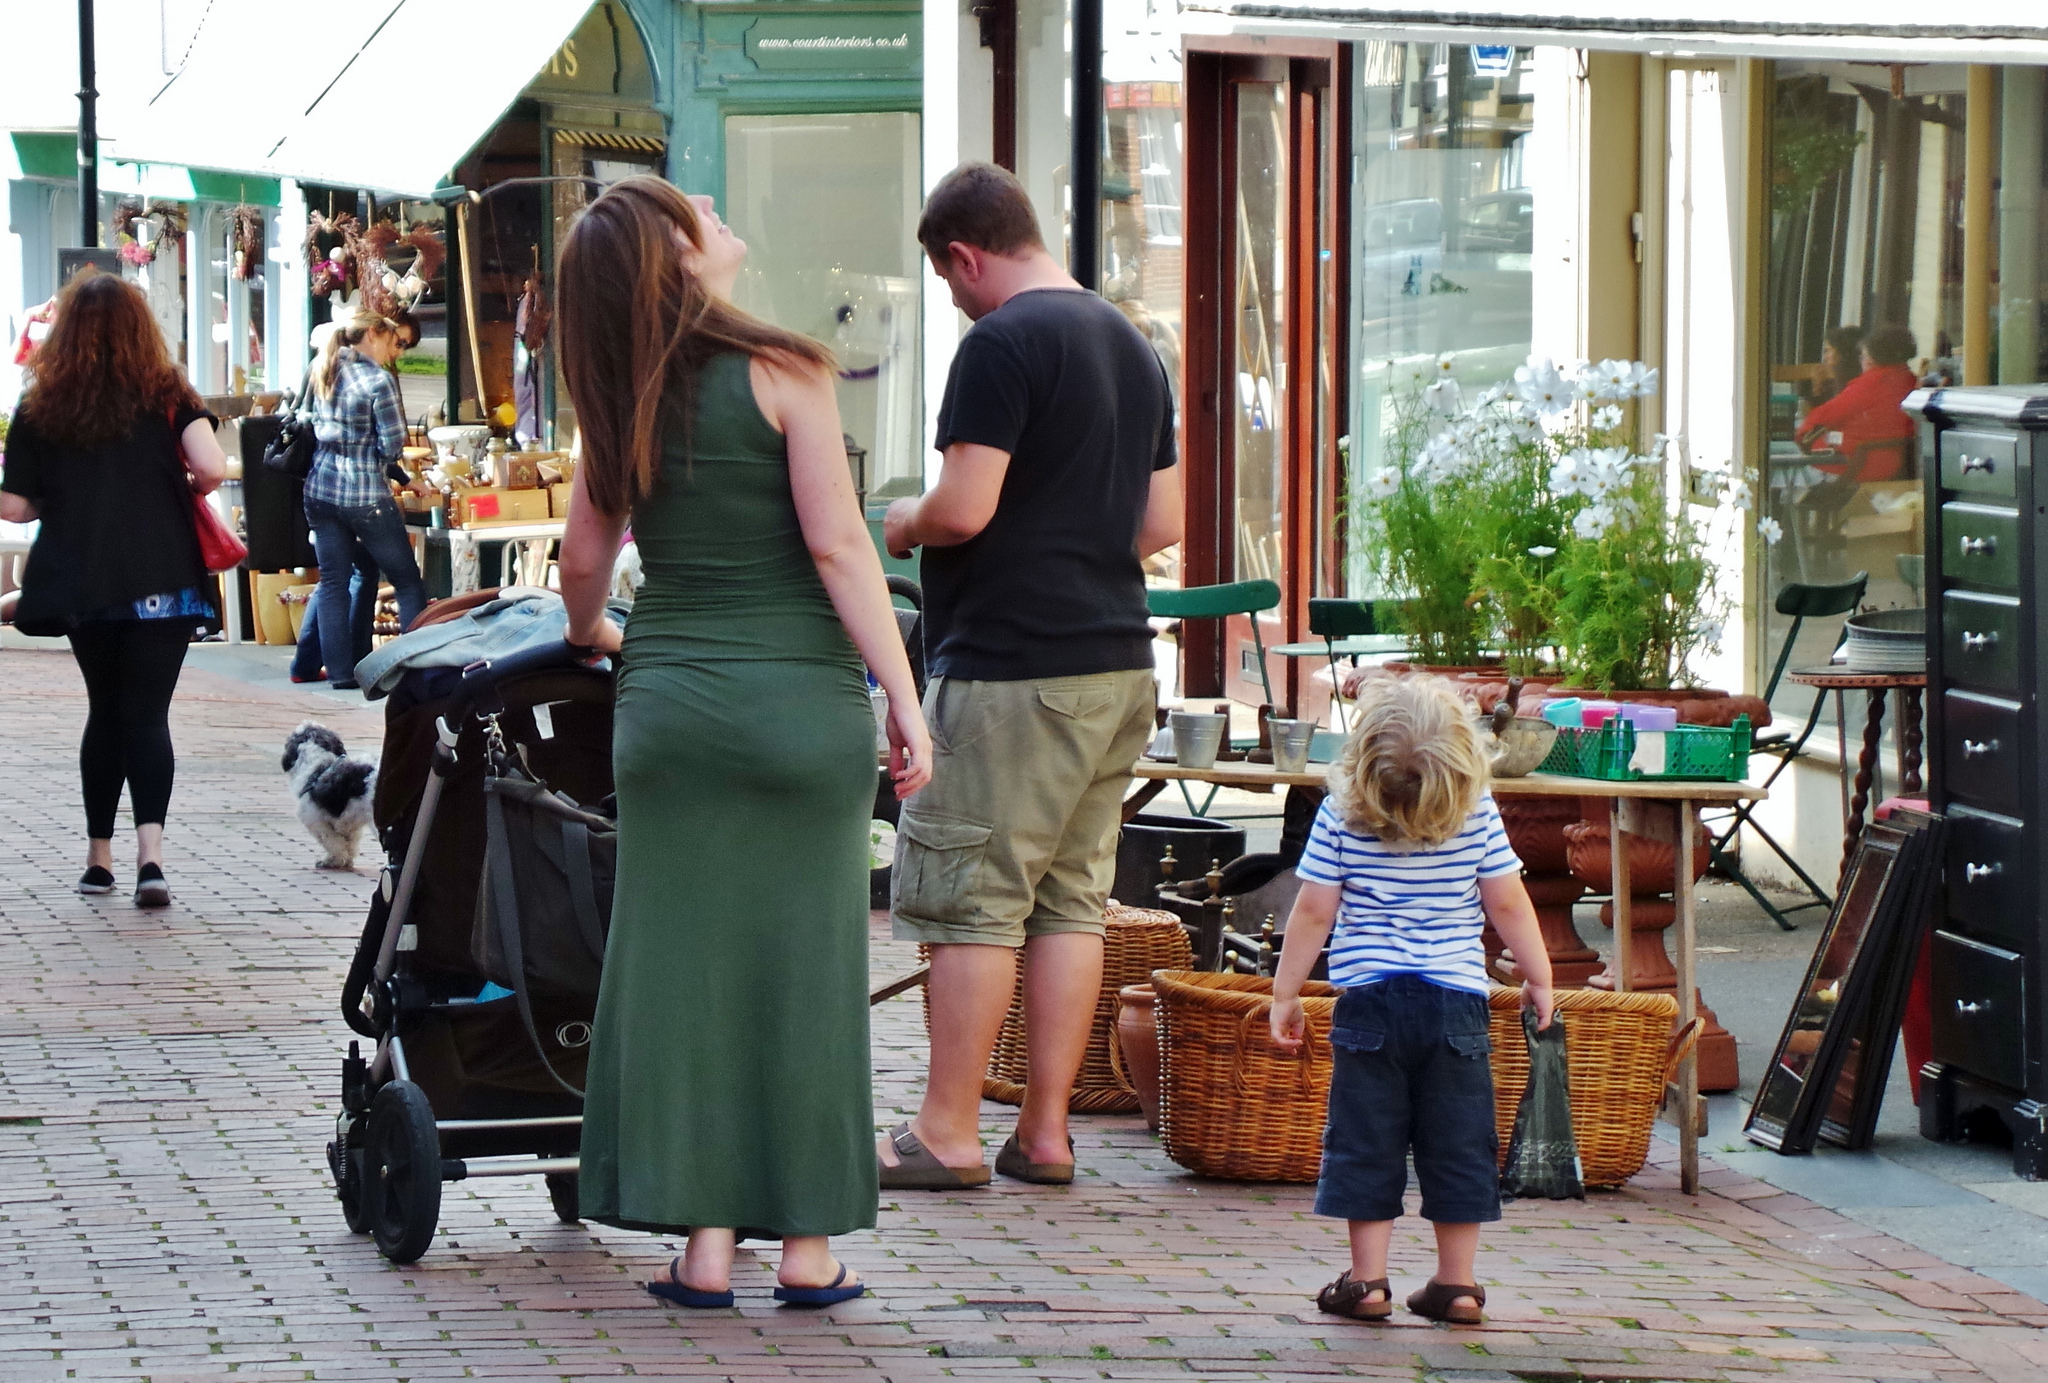 Will Young Families Stay In Cities